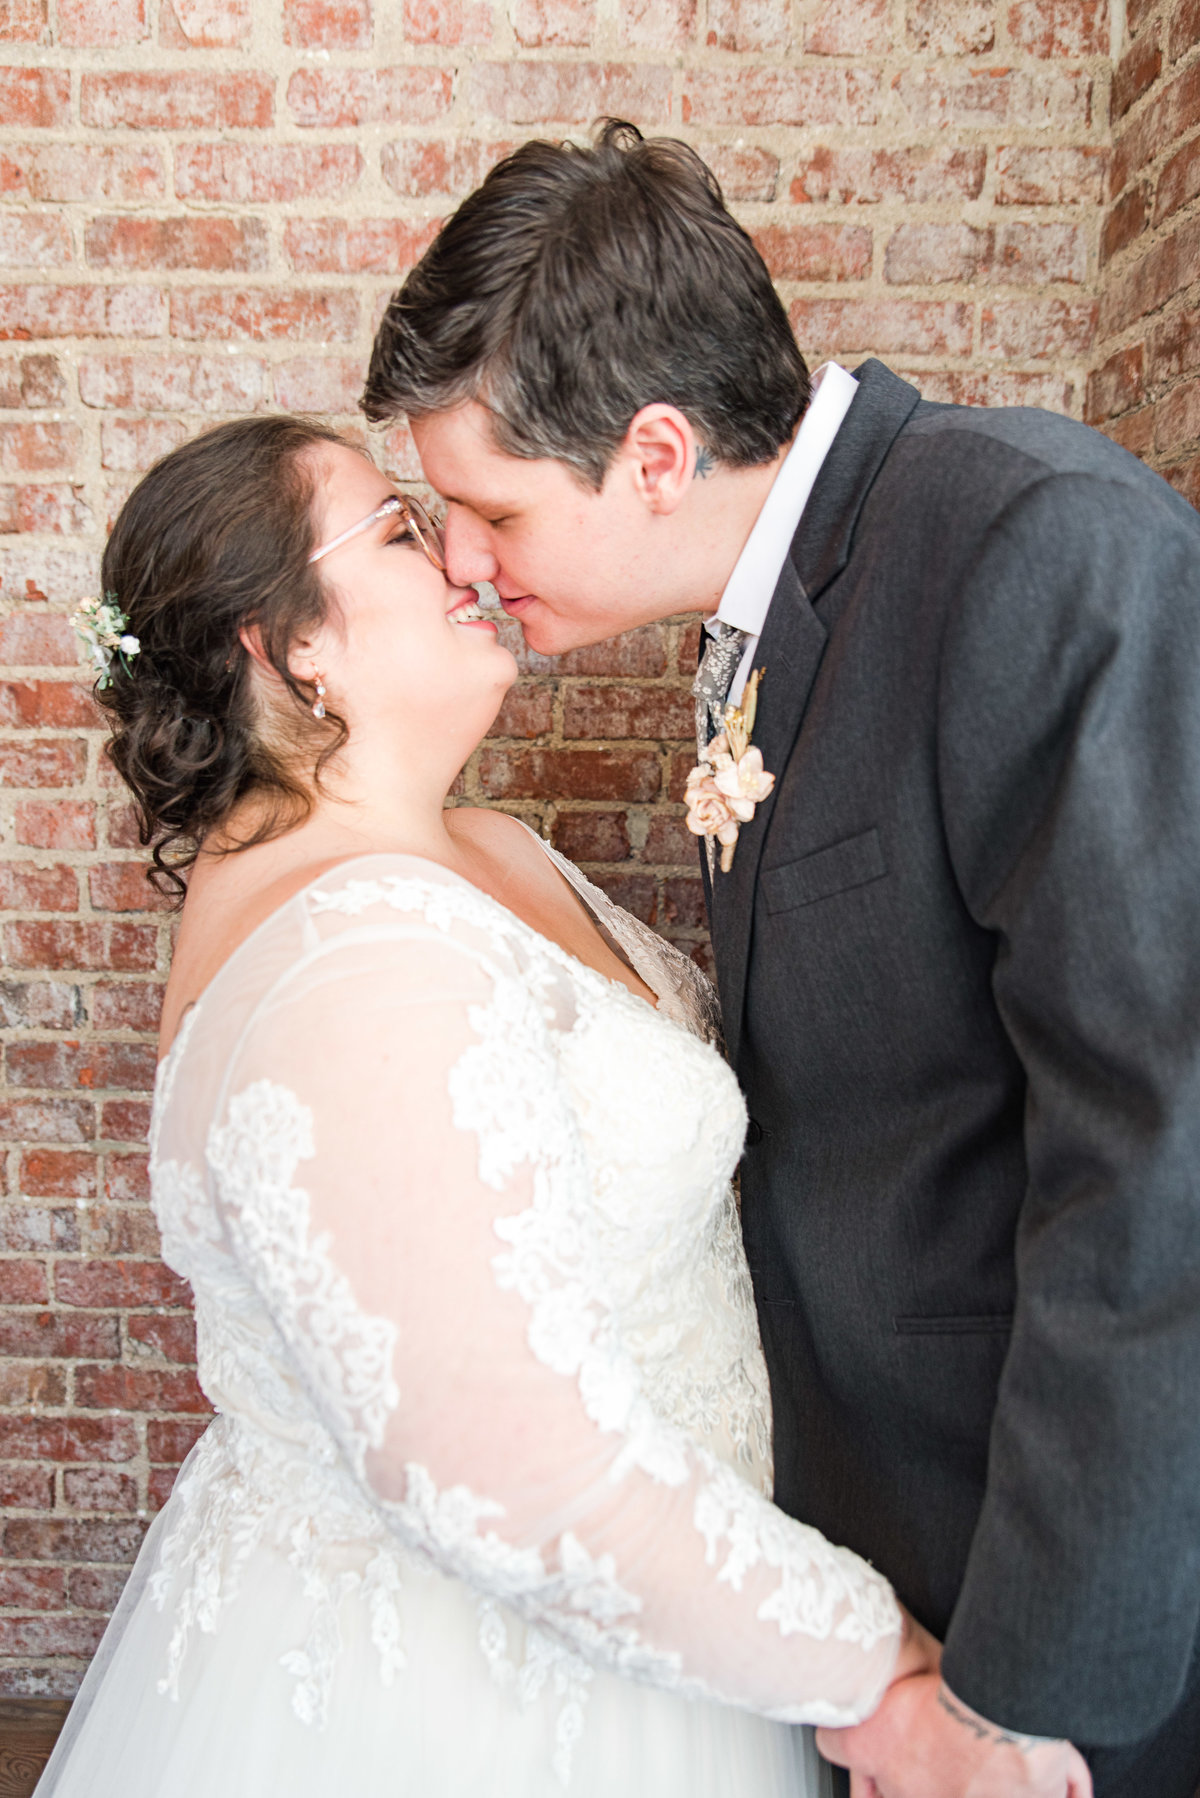 Neidhammer Wedding Photographer Indianapolis Wedding Photographer-9